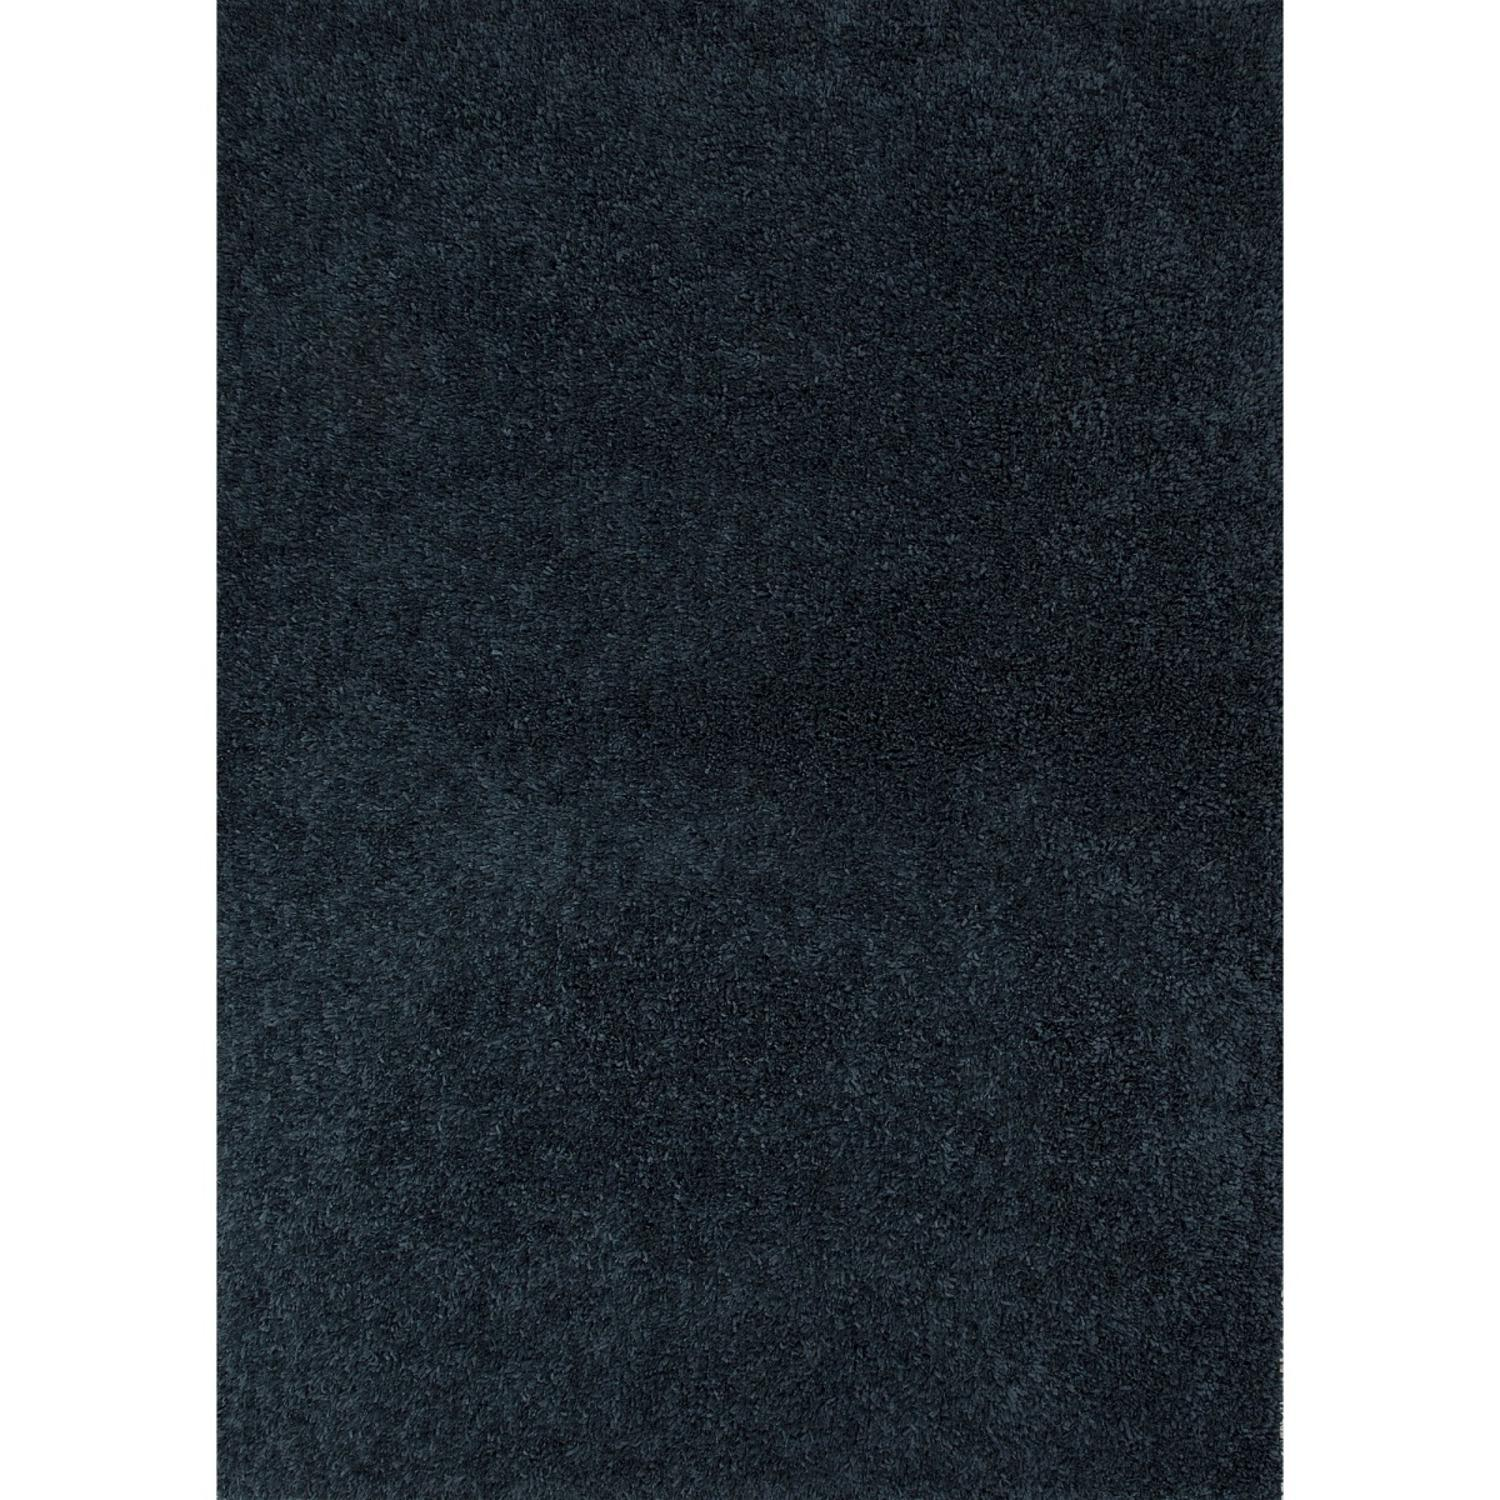 2 X 3 Midnight Blue Robin Shaggy Solid Hand Tufted Area